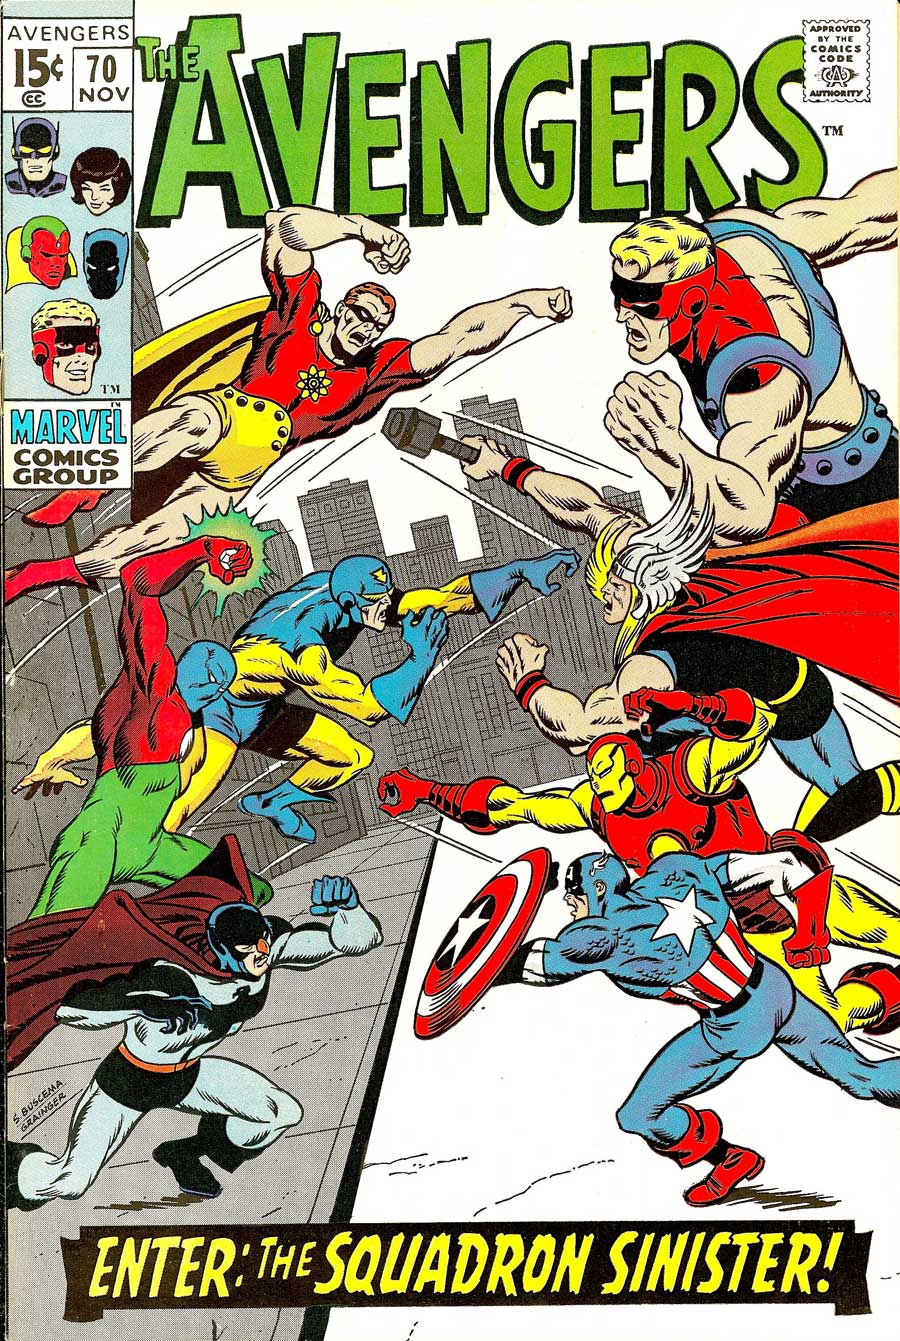 Avengers #70 with the Squadron Sinister